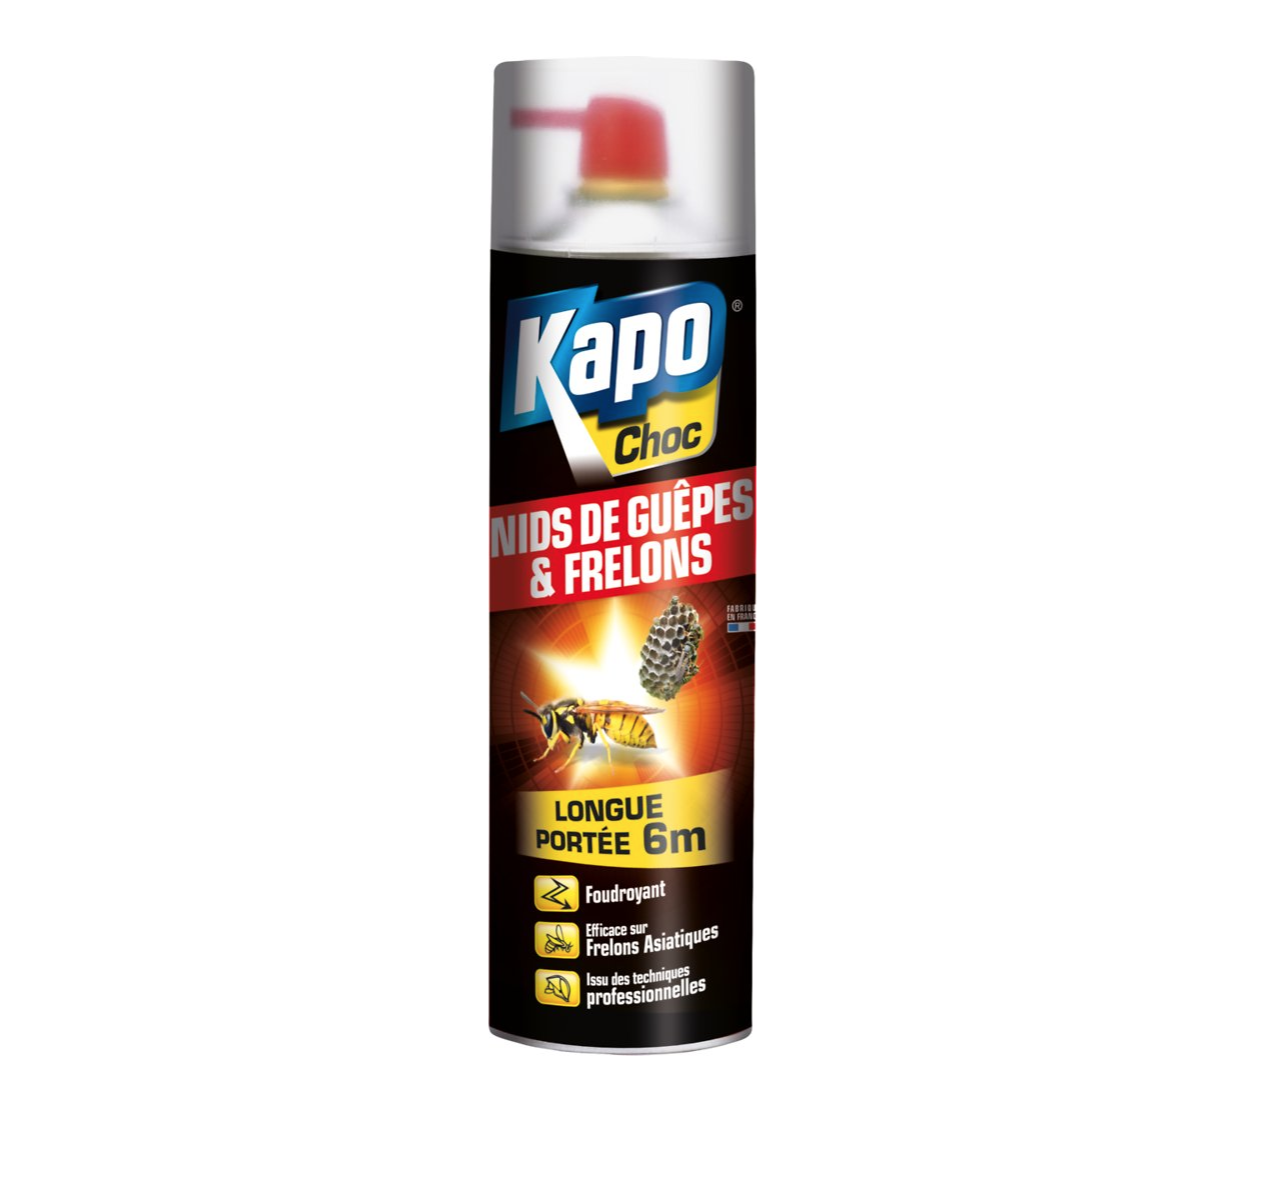 KAPO CHOC NIDS DE GUEPES & FRELONS SPRAY AEROSOL PROTECTION INSECTE 500 ML GARDEN 3365000031100 HOME SECURITY COMASOUND KARTEL